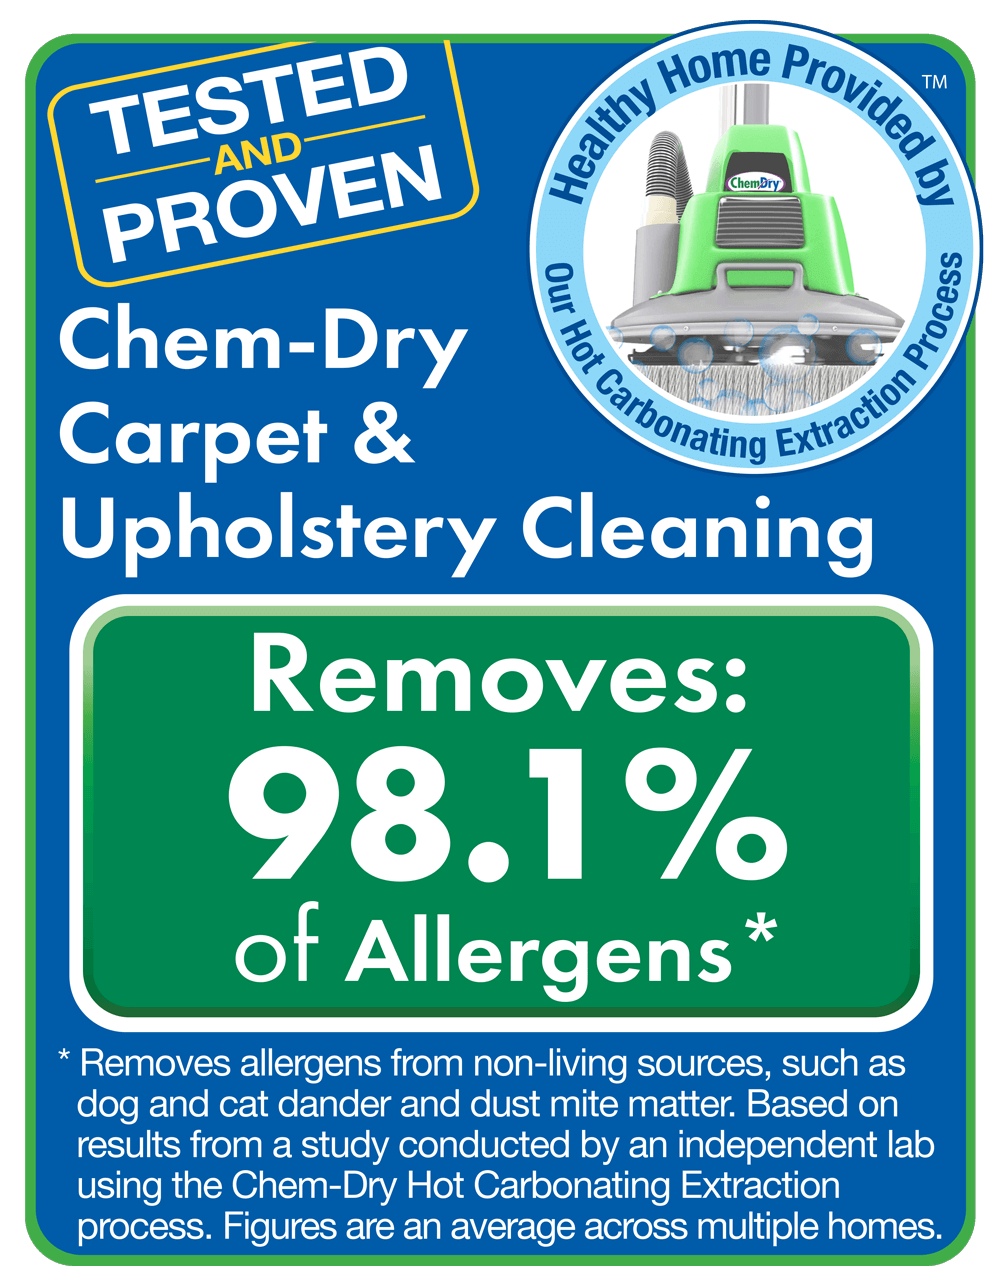 Chem-Dry proven to remove allergen by test results